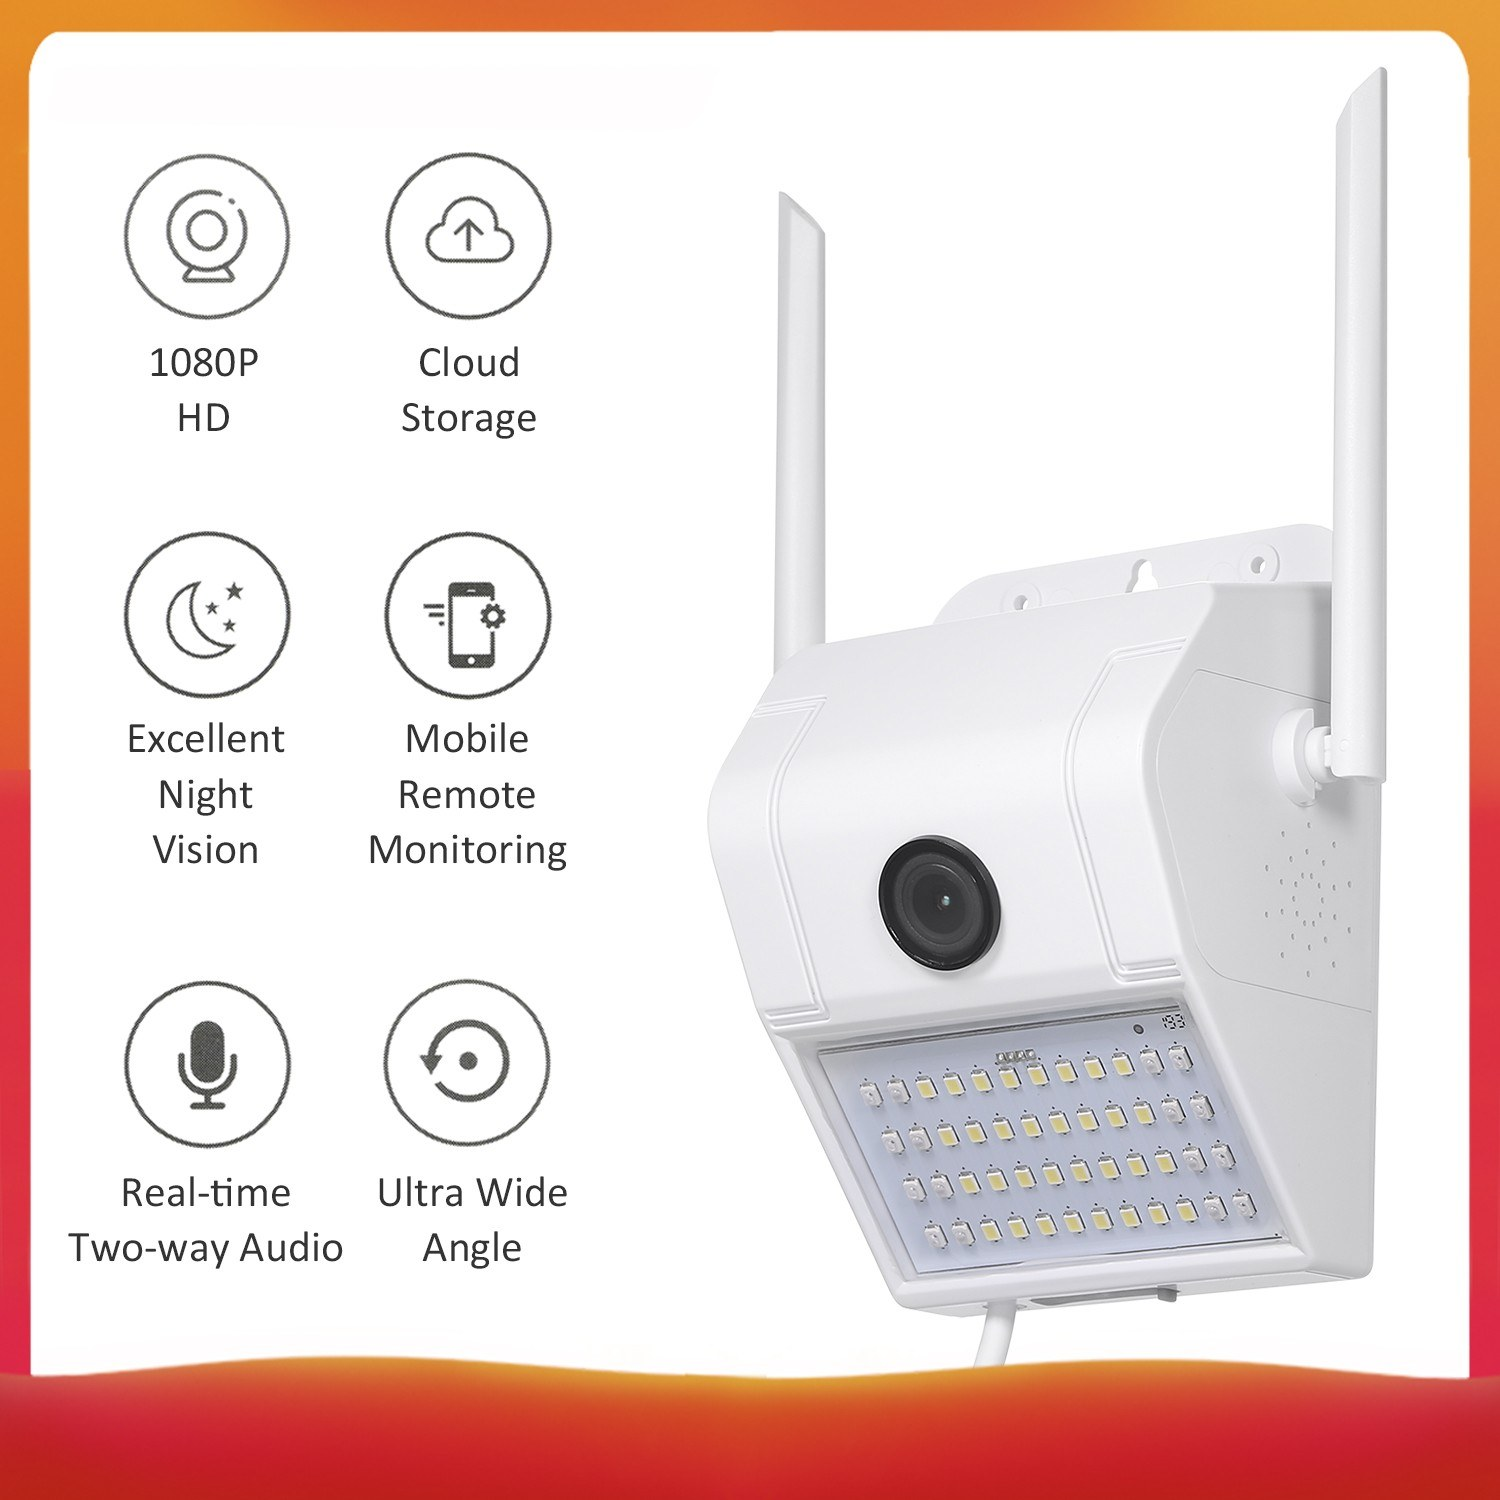 V380 1080P Multifunctional WIFI Wireless Surveillance Outdoor Wall Light Webcam Security Camera with PIR Motion Detection Sensor IP65 Water Resistance